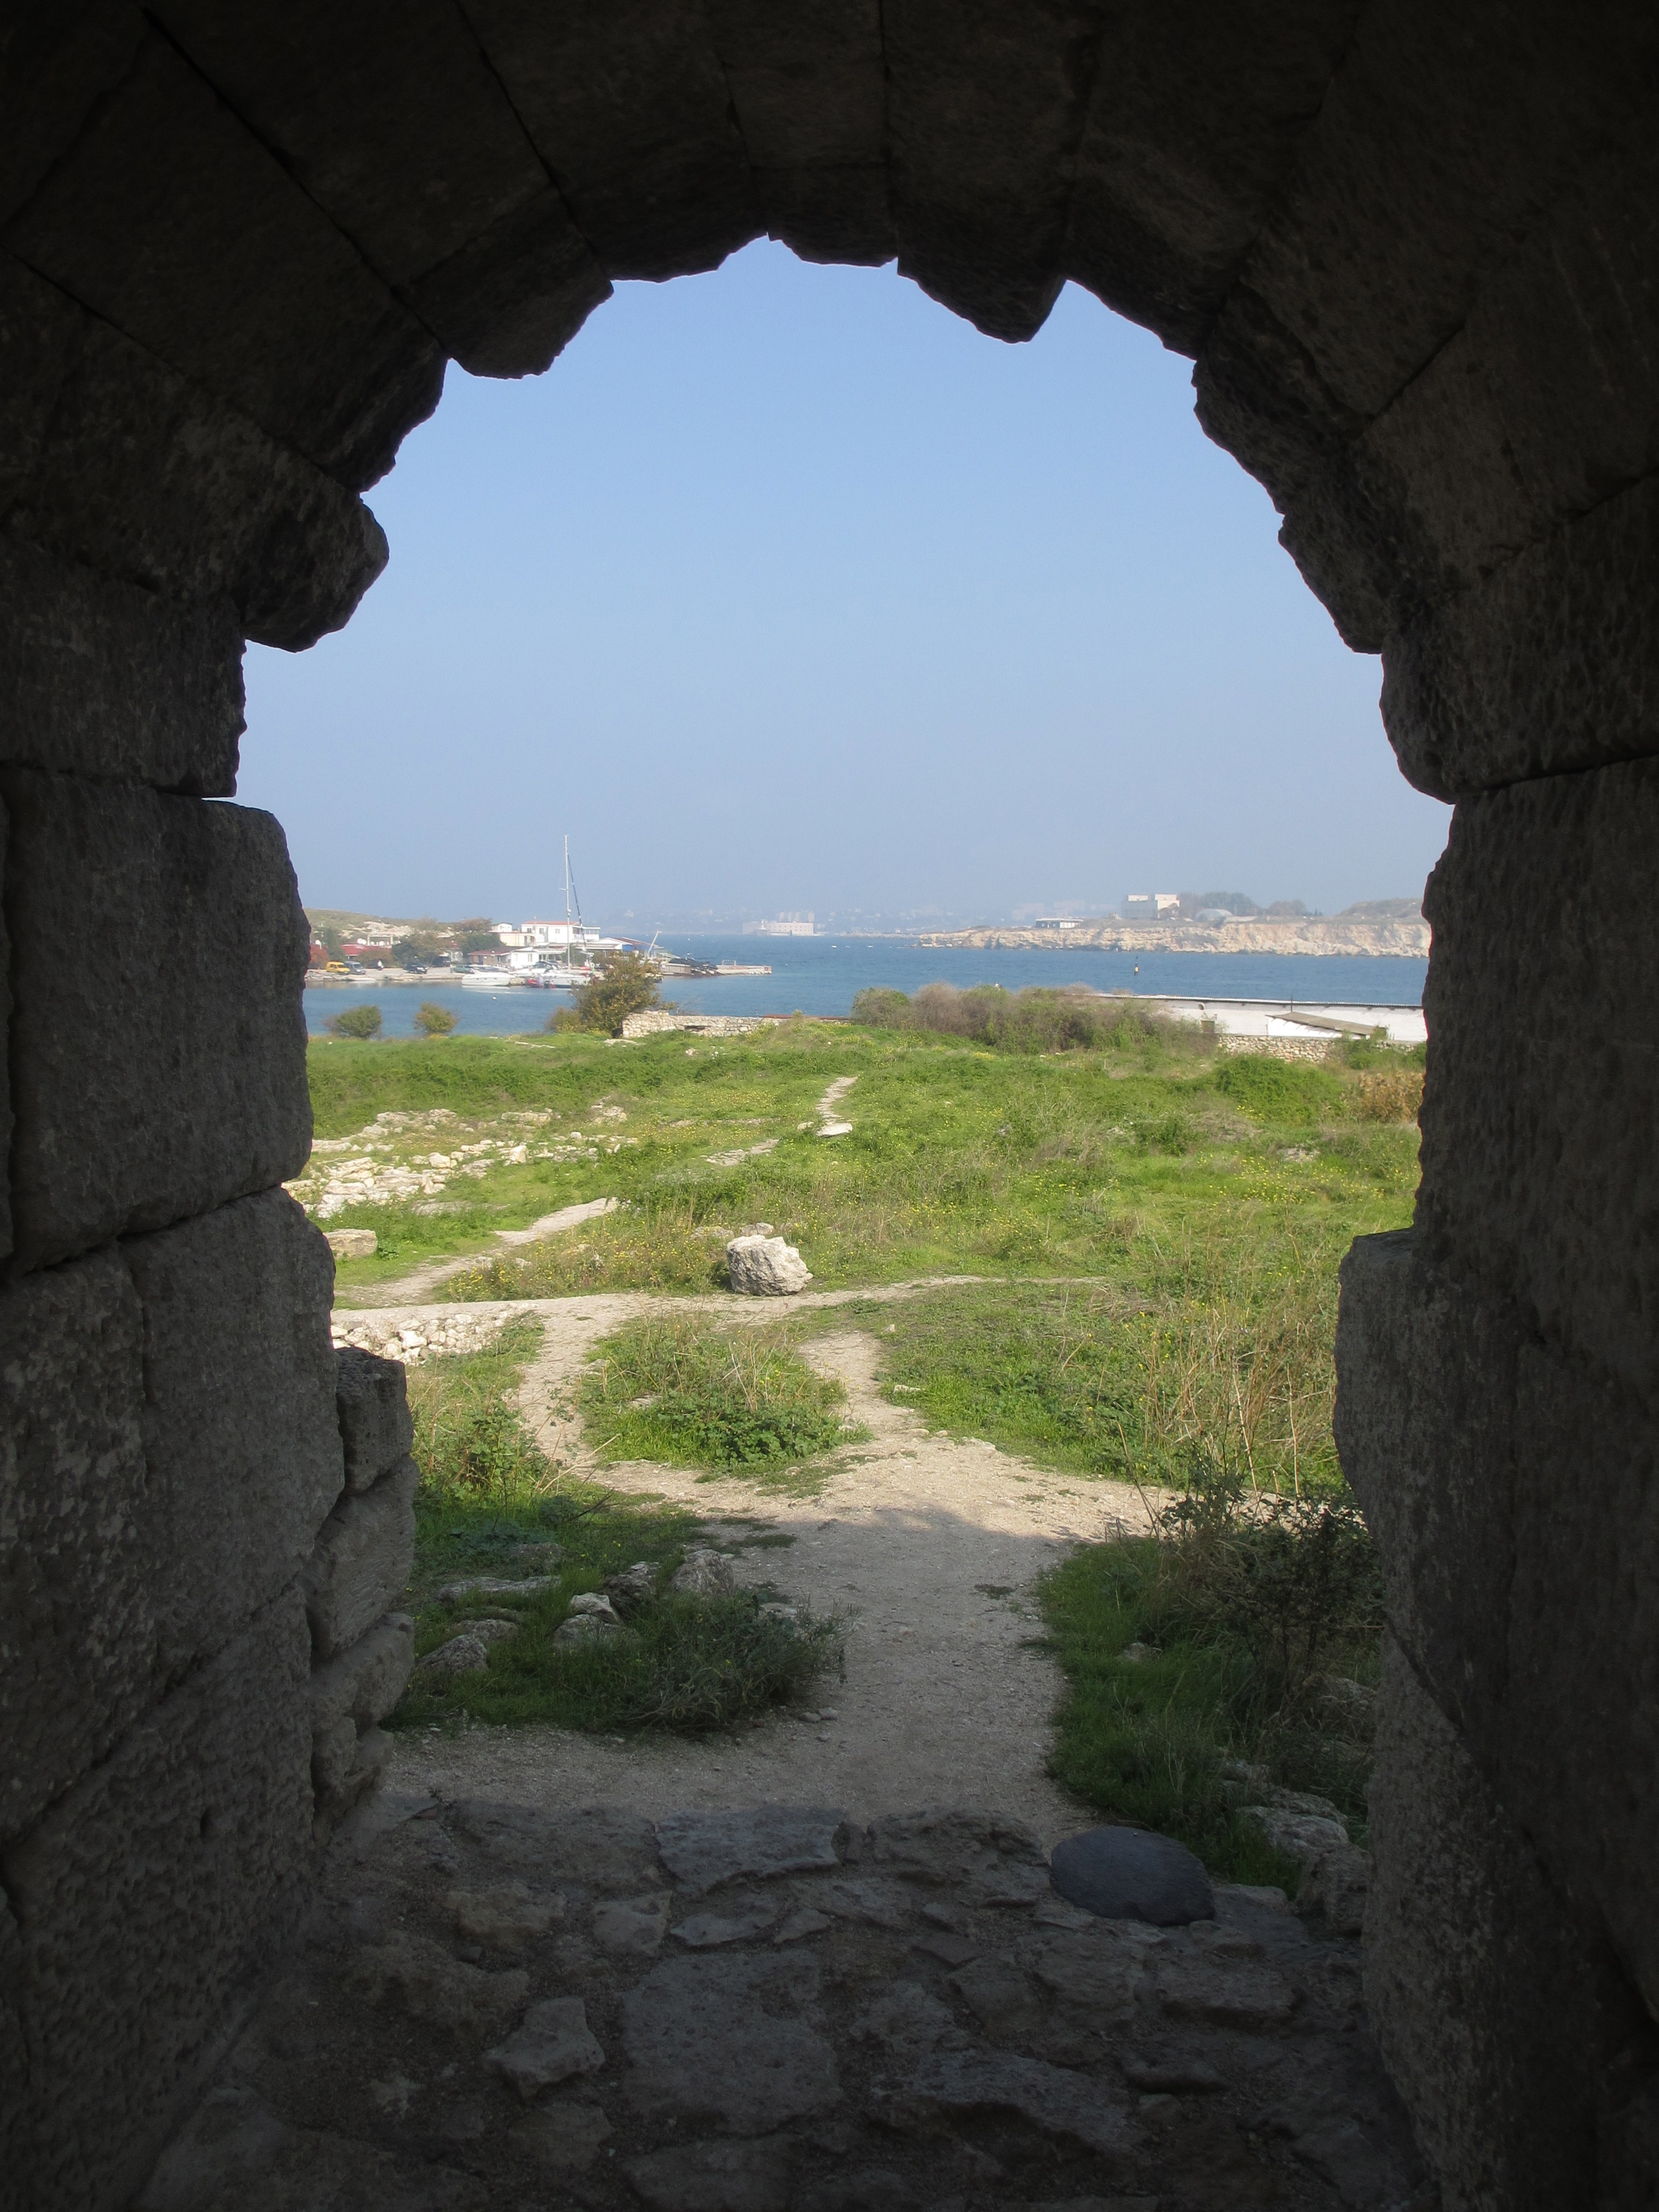 If the world were a village of 100 people lesson plan - Another Gratuitous Picture Of Sevastopol This Time At Chersonesus